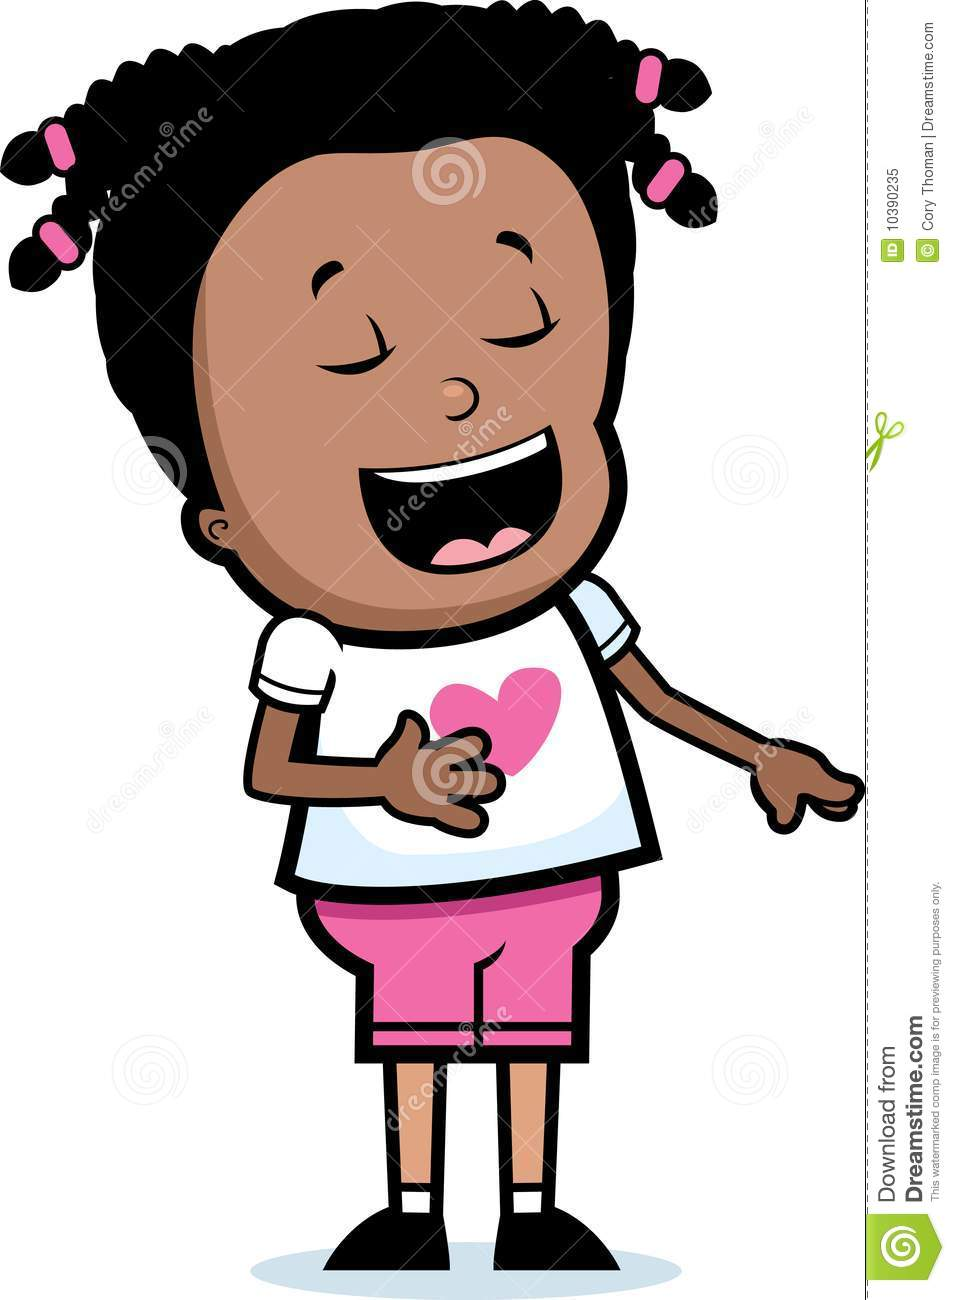 Laughing girl clipart image free Girl Laughing Royalty Free Stock Photo - Image: 10390235 image free